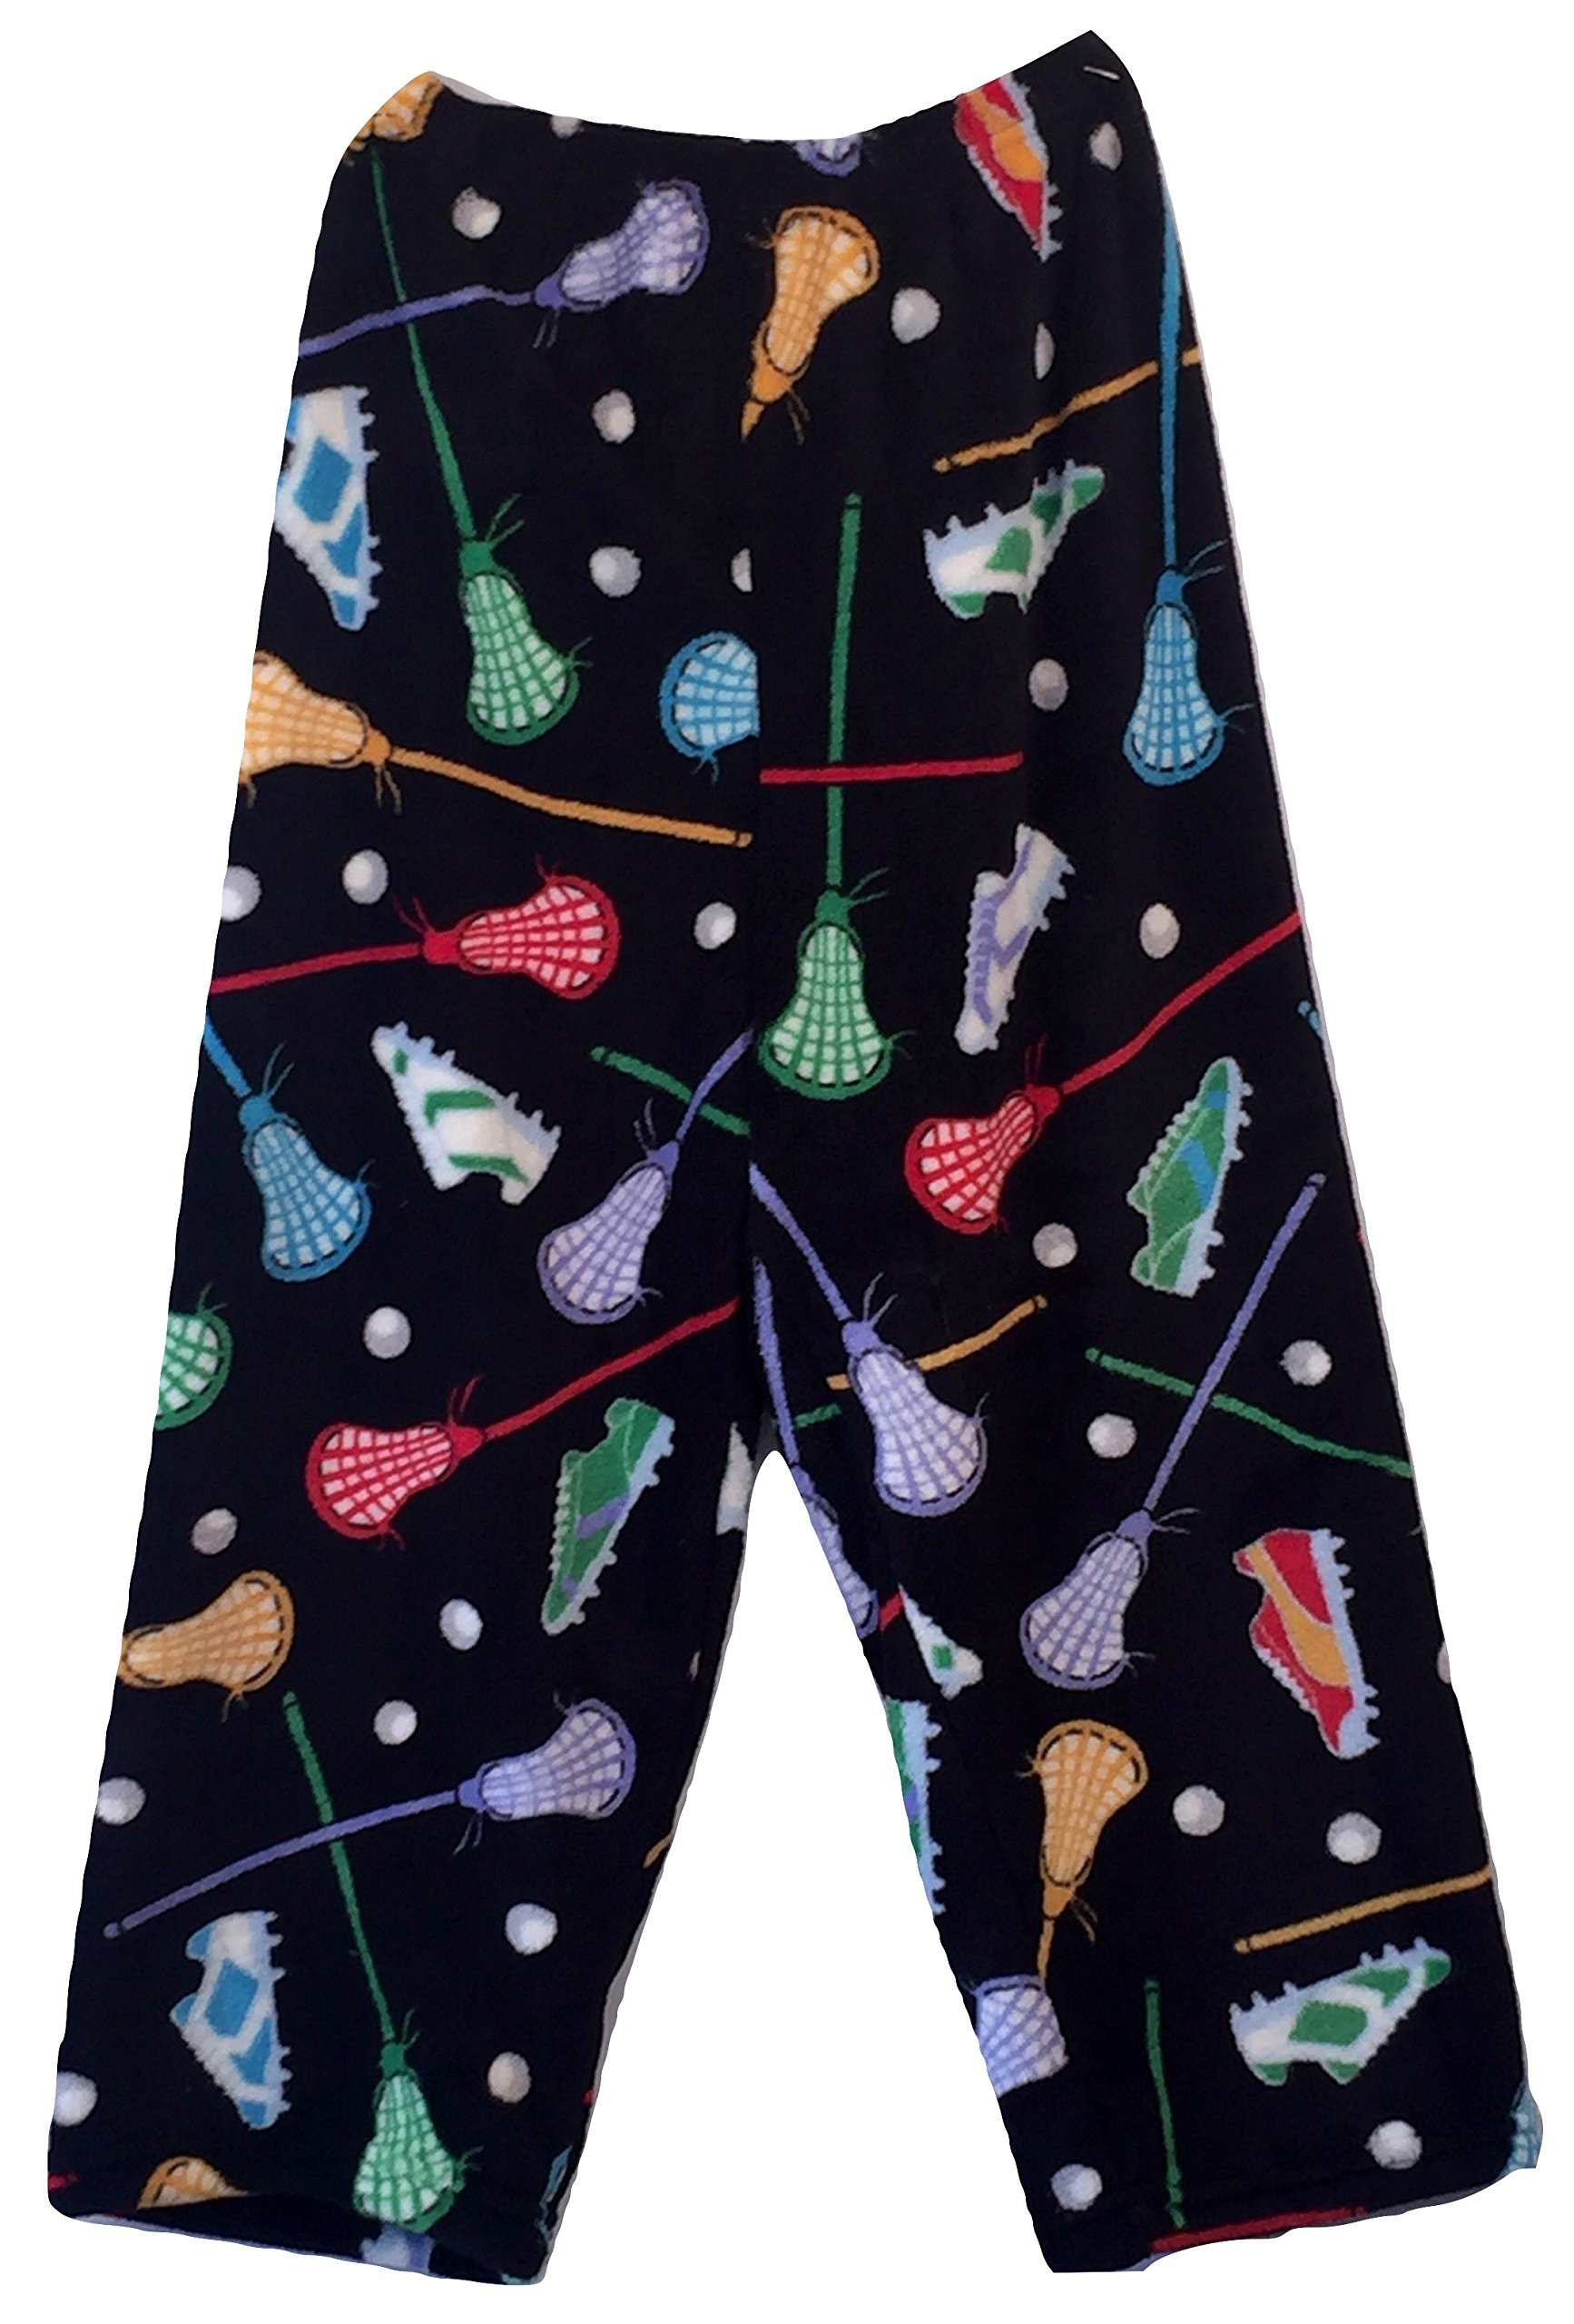 Made with Love and Kisses Boy's Fuzzy Plush Pajama/Loungewear Pants - Black Lacrosse - 8/10